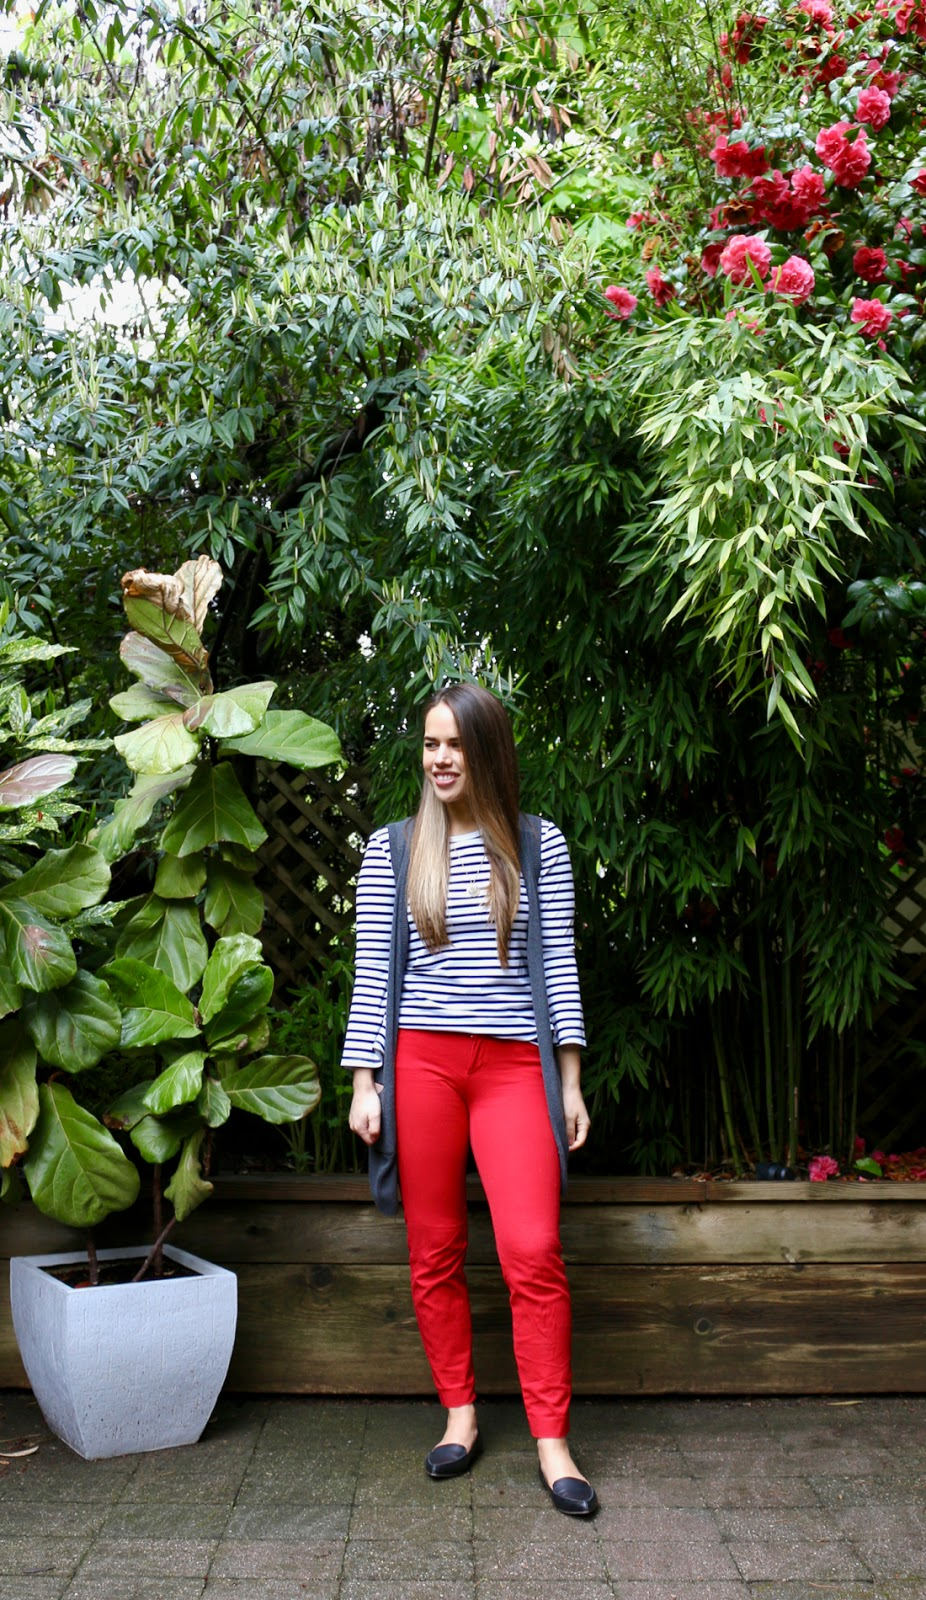 Jules in Flats - Stripe Bell Sleeve Top with Red Pants and Knit Vest (Business Casual Spring Workwear on a Budget)